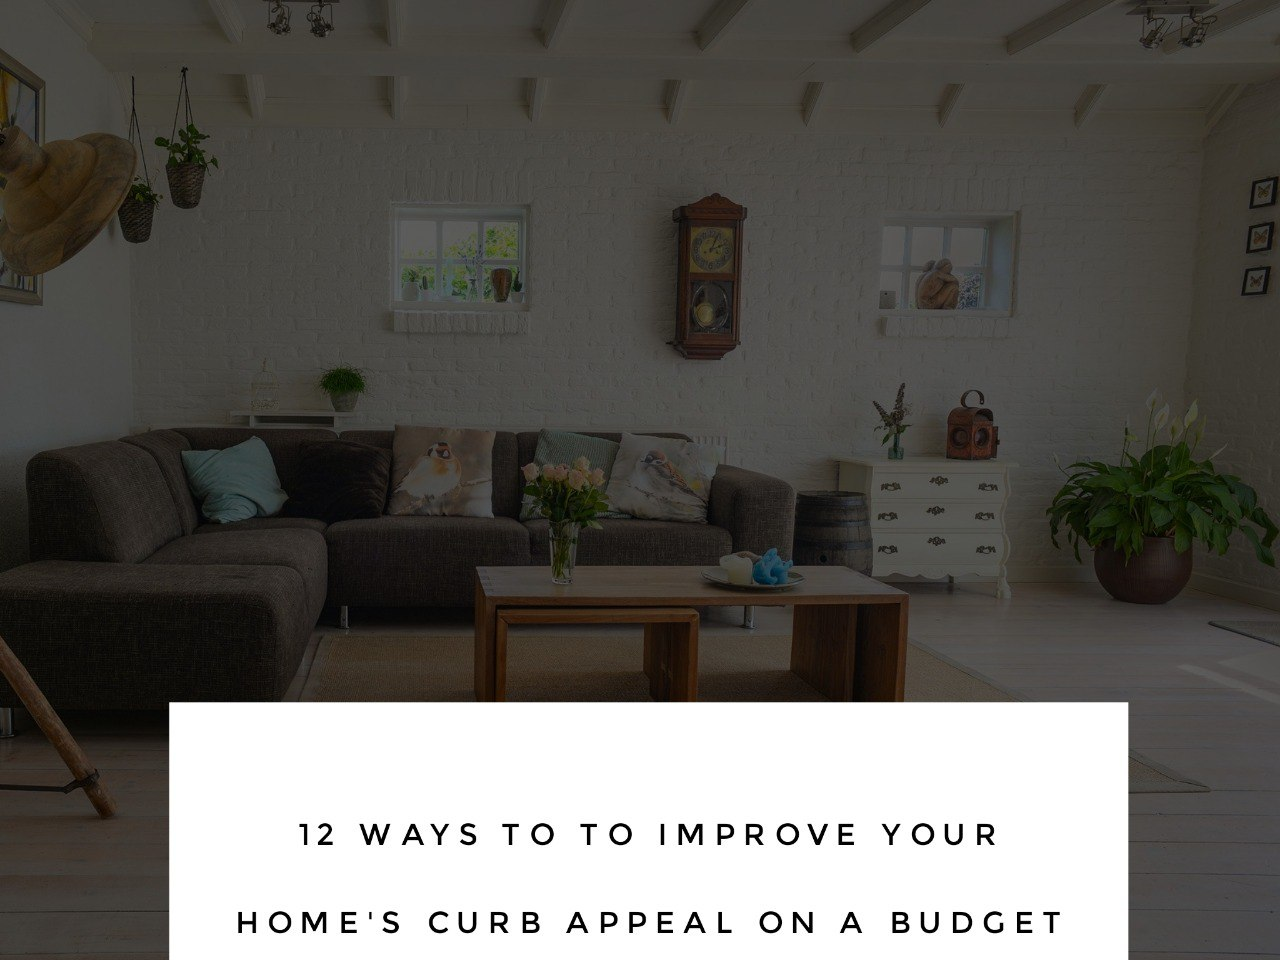 Photo - 12 Ways to Improve Your Home's Curb Appeal on a Budget